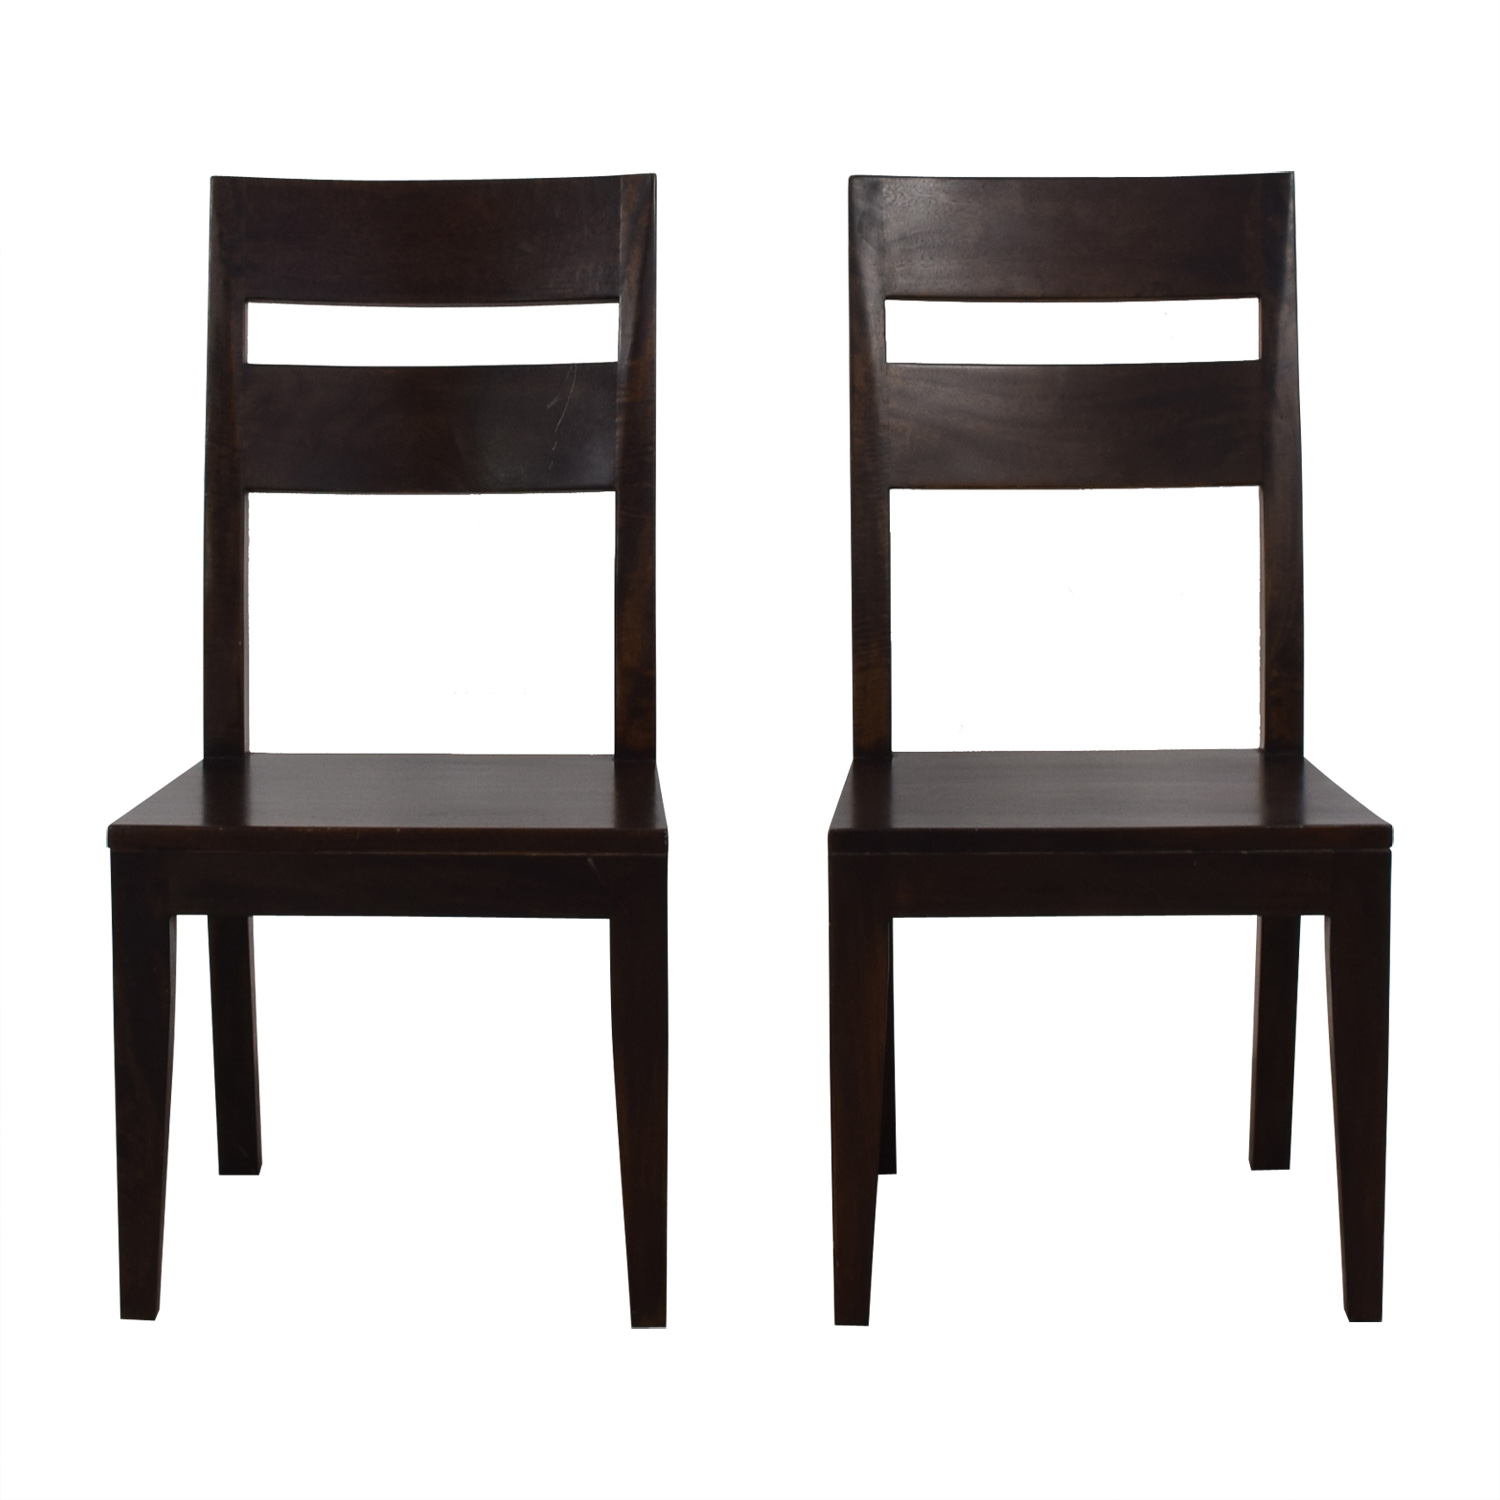 Crate & Barrel Crate & Barrel Wood Dining Chairs coupon